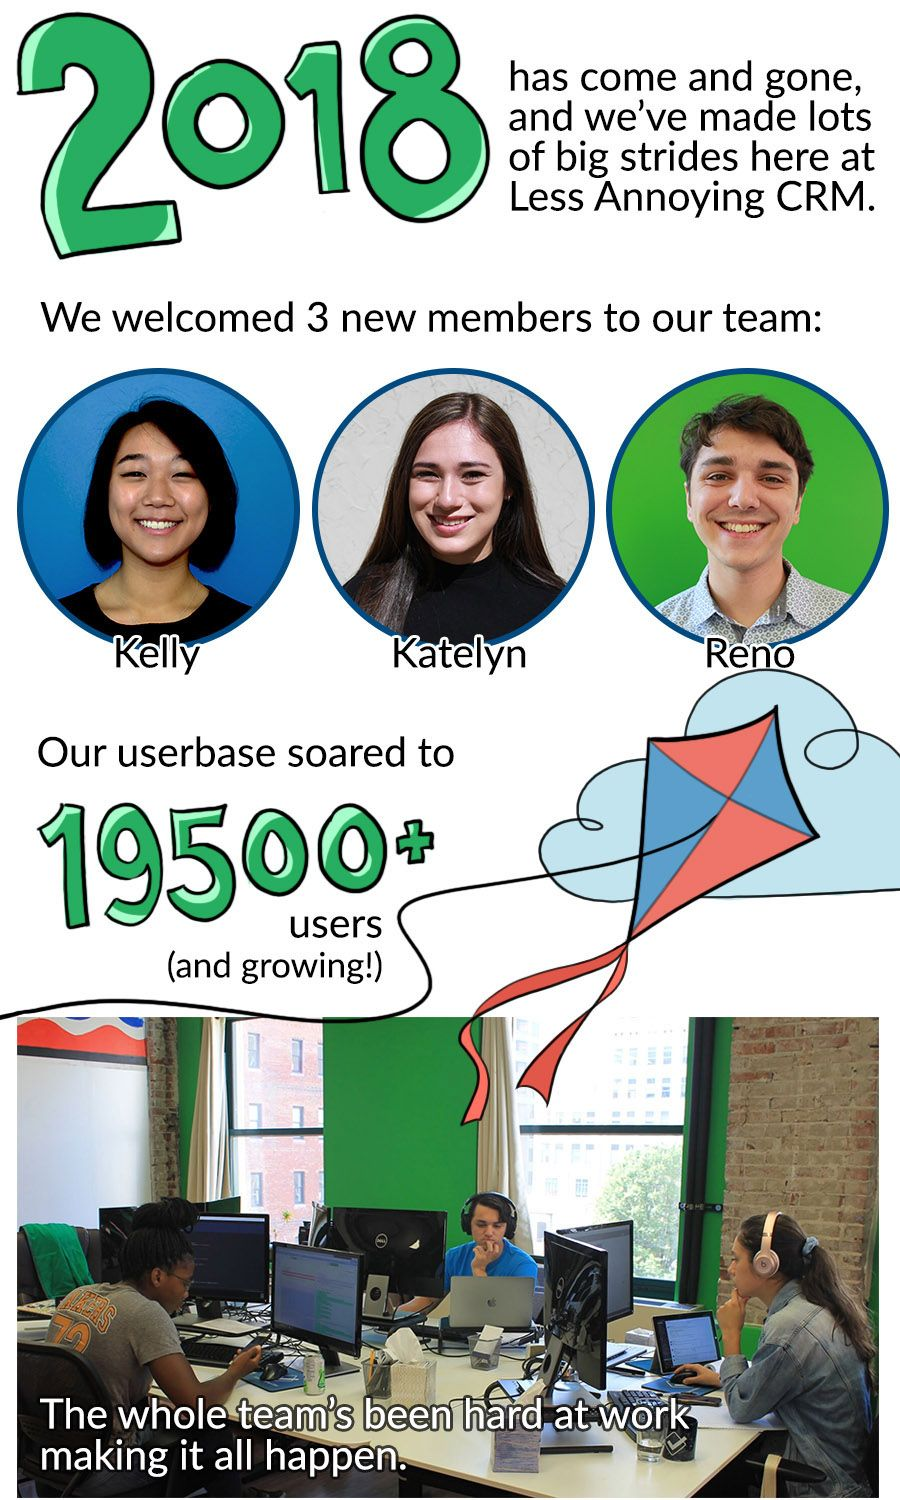 2018 has come and gone, and we've made lots of big strides here at less annoying crm. we welcomed 3 new members to our team: kelly, katelyn and reno. our userbase soared to 19500+ users (and growing!). the whole team's been hard at work making it all happen. our developers deployed 357 updates this year, including: new calendar, improved importing tools, smarter email logging, and updated tutorial guides. our crm coaches talk with our users every single day! as a team, we've answered: 15,400+ help requests, 2,700+ phone consults, and 1,850+ onboarding demos. we built on some of our new ideas...Julia and Eunice presented over 100 webinars to more than 800 unique participants. This summer, we hosted 6 new students in our coding fellowship, a program that teaches coding skills to people from underrepresented groups in tech. And we're still innovating. This year, we launched a mentorship program to help our summer interns get the most out of their time here. We had our first-ever diversity and inclusion training workshop. And outside of work hours, our developers teamed up for a coding challenge called Global Hack, an annual competition that brings together technologists and students right here in St. Louis to create apps and software with a social impact. This year, we also moved into our new offices! We only moved 5 floors, but our square footage has almost doubled in the move. We also got to show off our new space at LACRM's first-ever user conference.